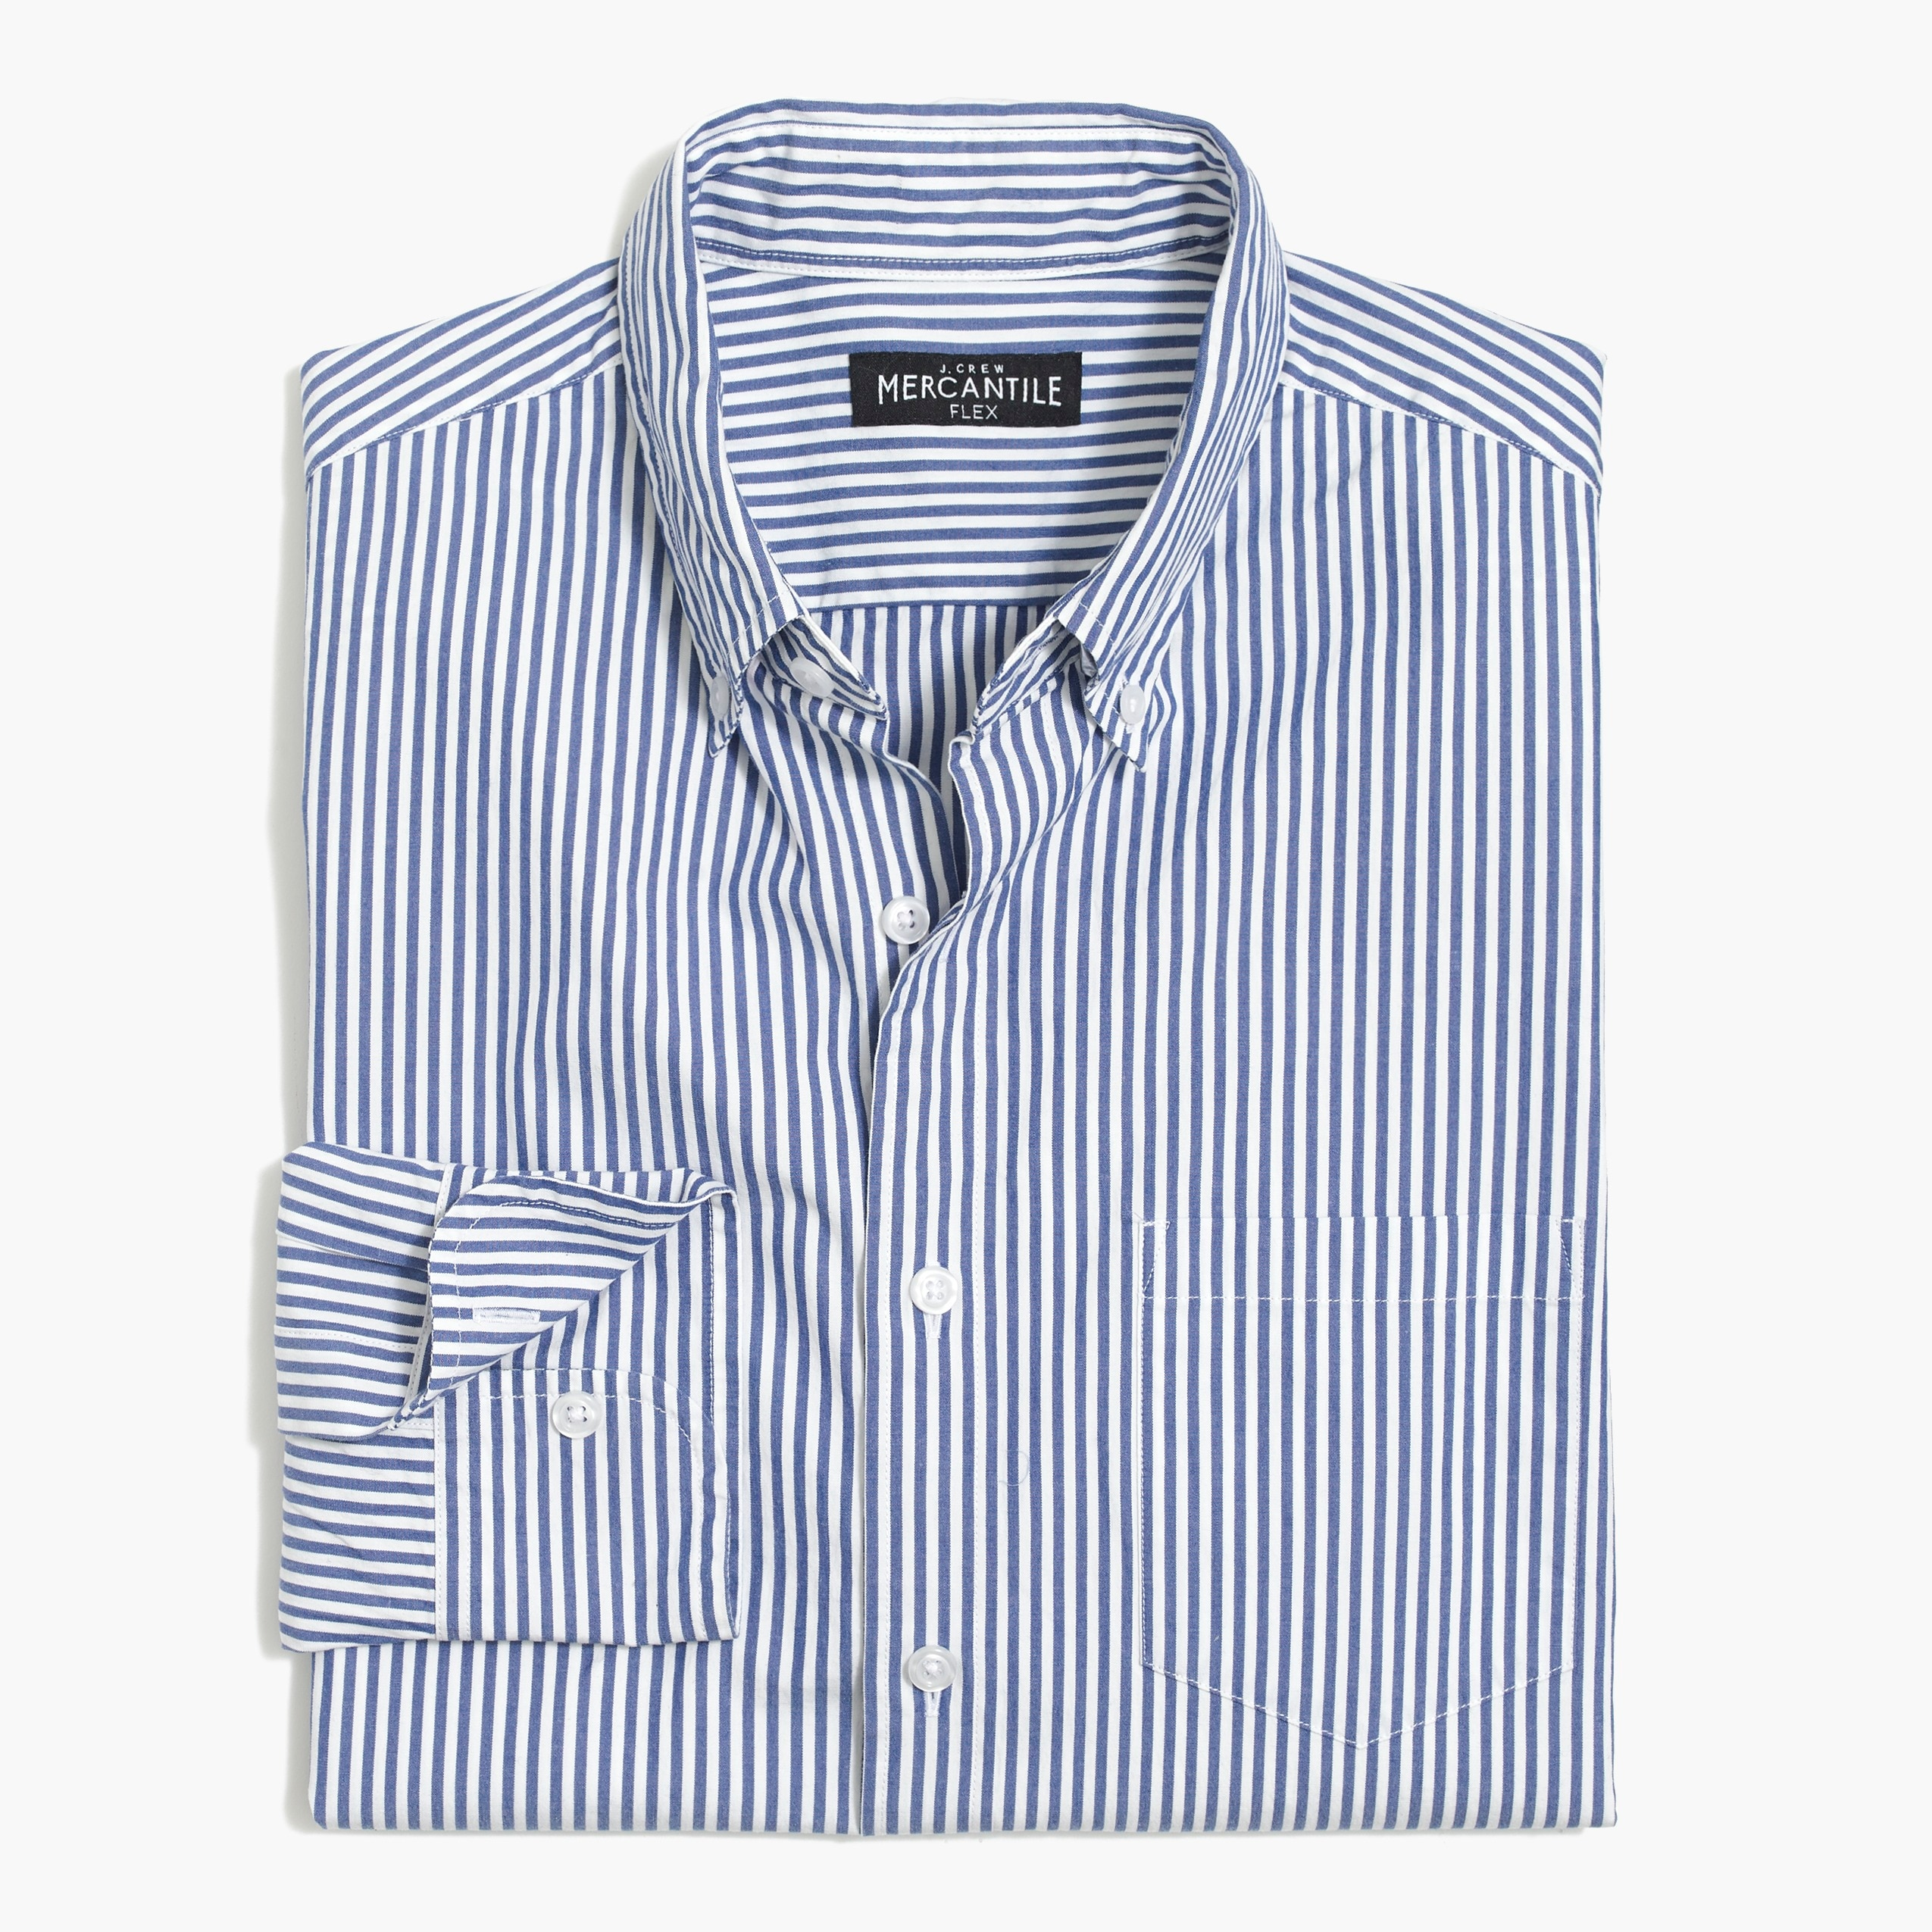 Flex washed shirt in stripe